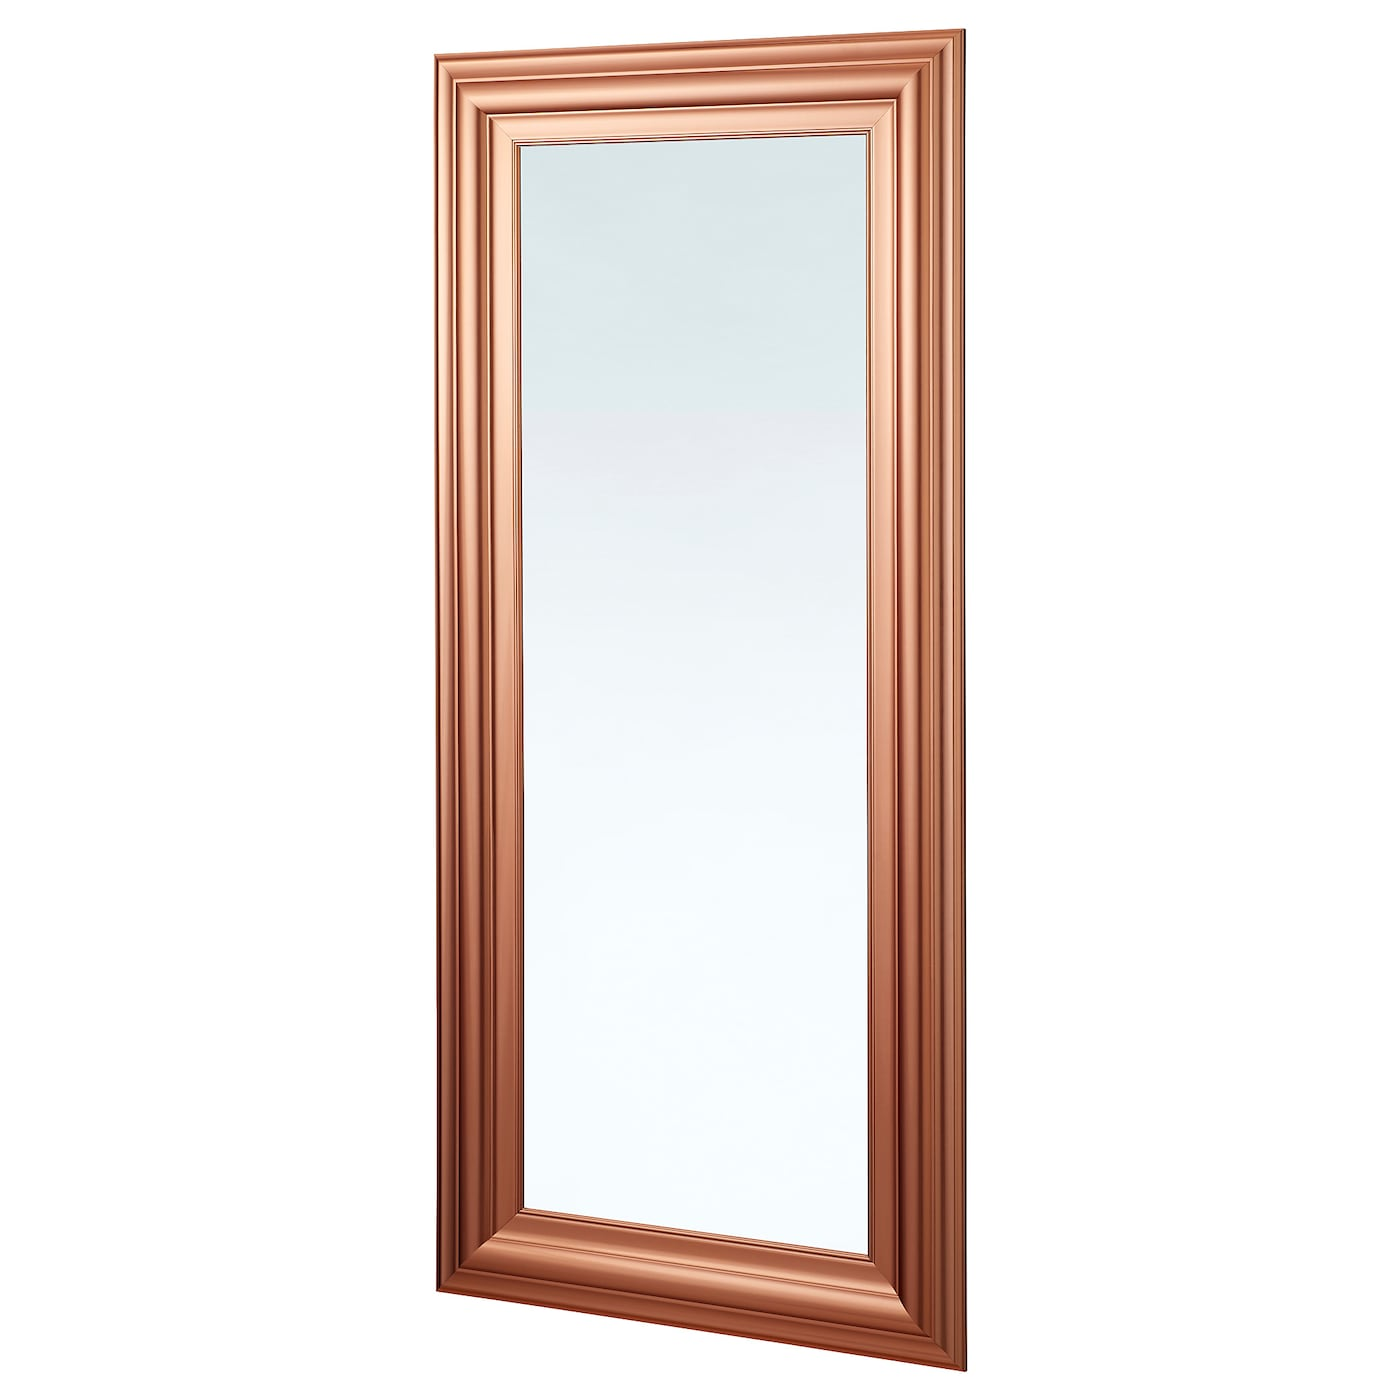 Ikea Levanger Mirror Full Length Can Be Hung Horizontally Or Vertically